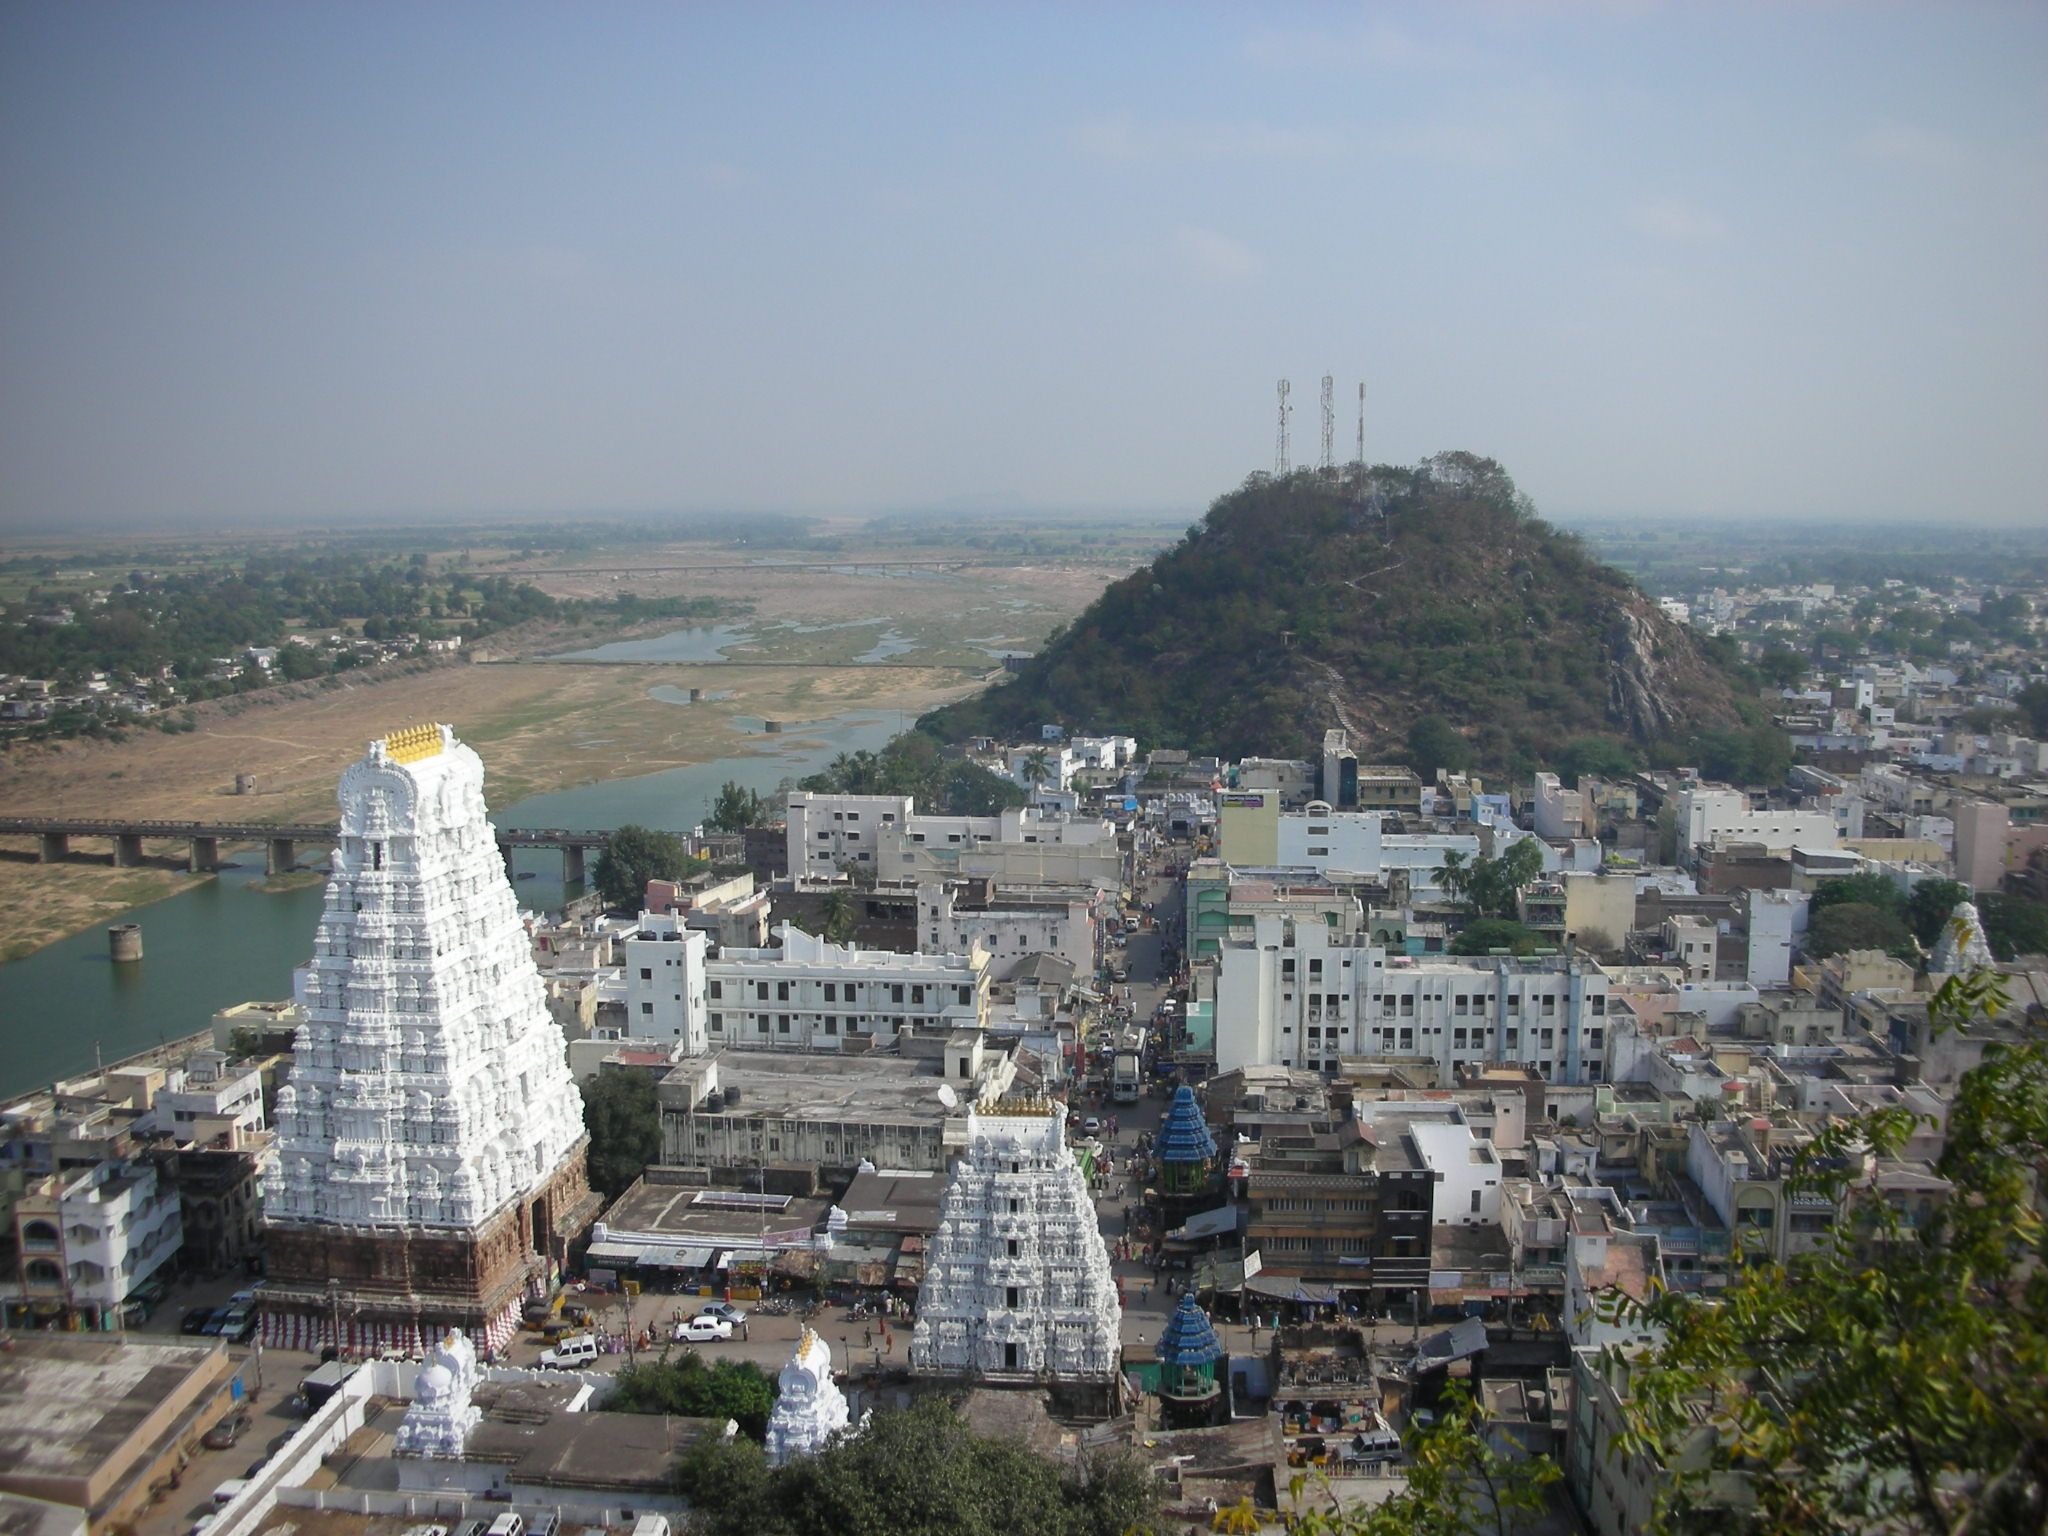 Srikalahasti Temple - The Kailash of South in Chittoor District, Andhra Pradesh